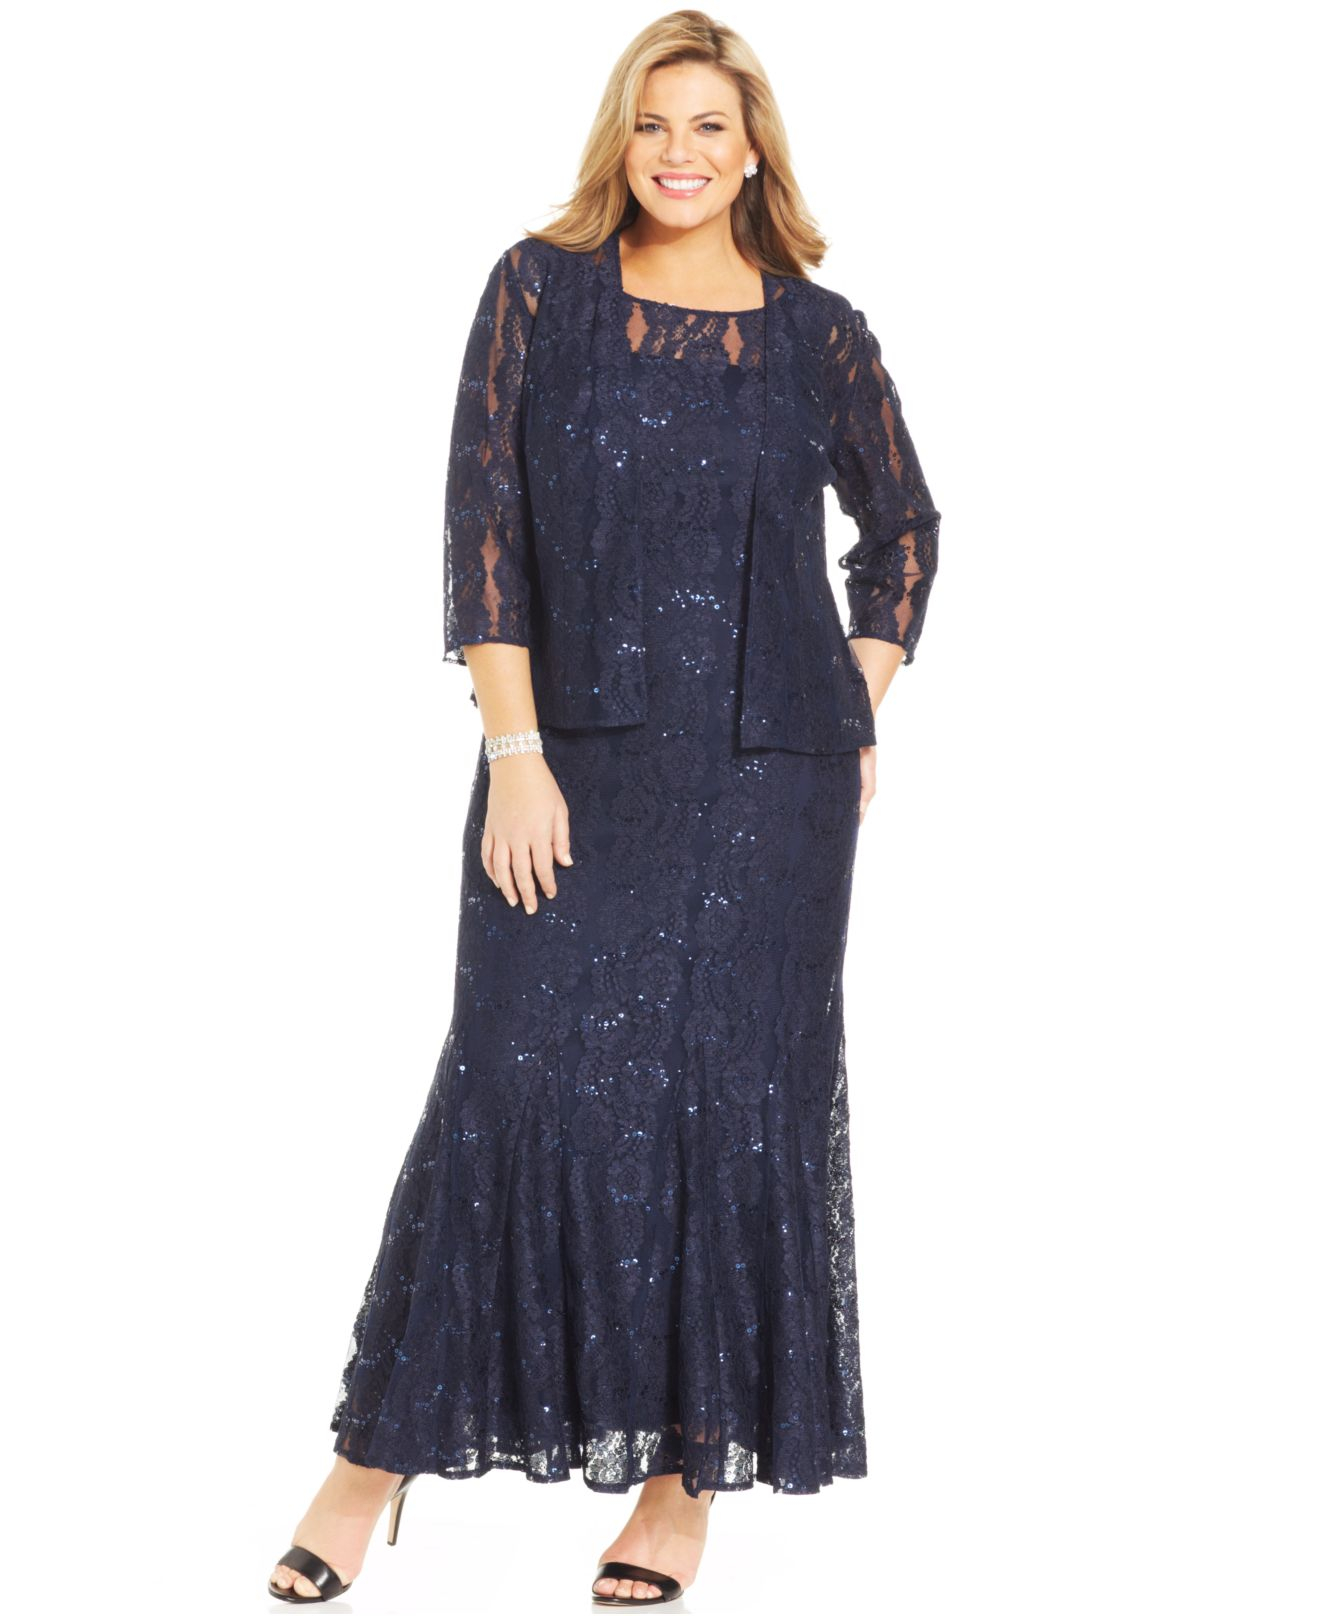 25315023 Alex Evenings Plus Size Sequin Lace Gown And Jacket in Blue - Lyst